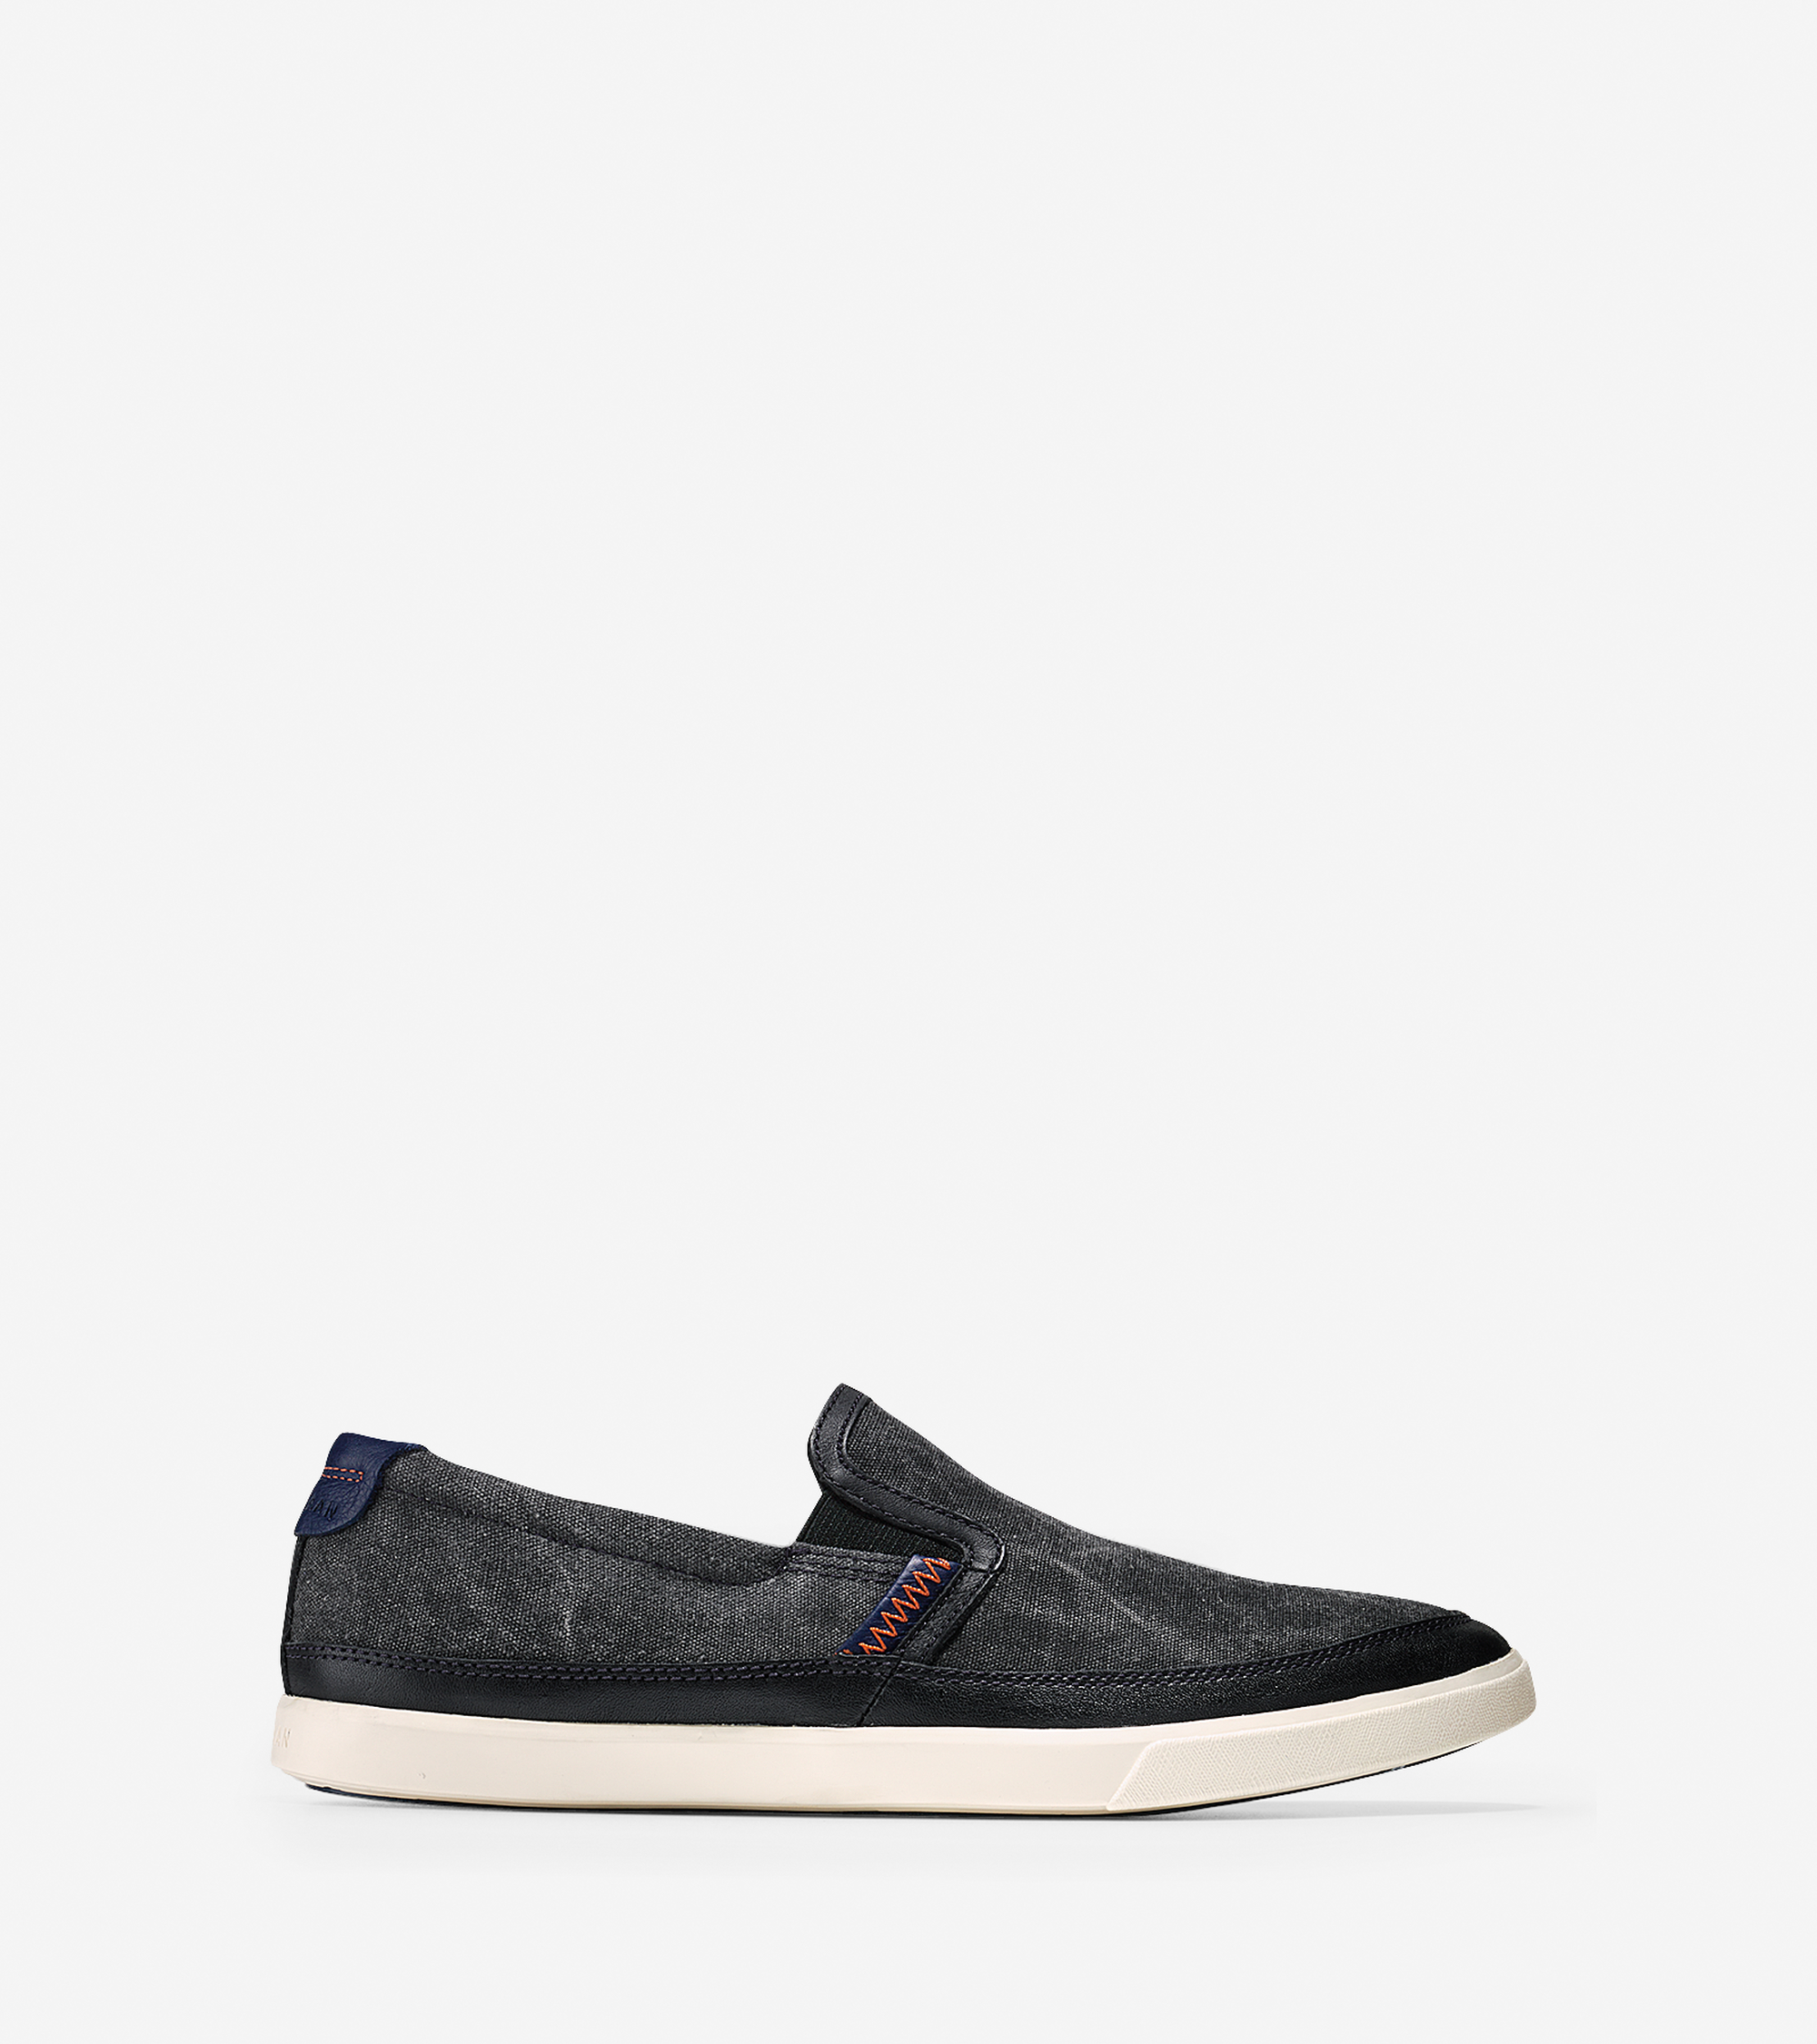 cole haan joshua slip on sneakers in black for lyst